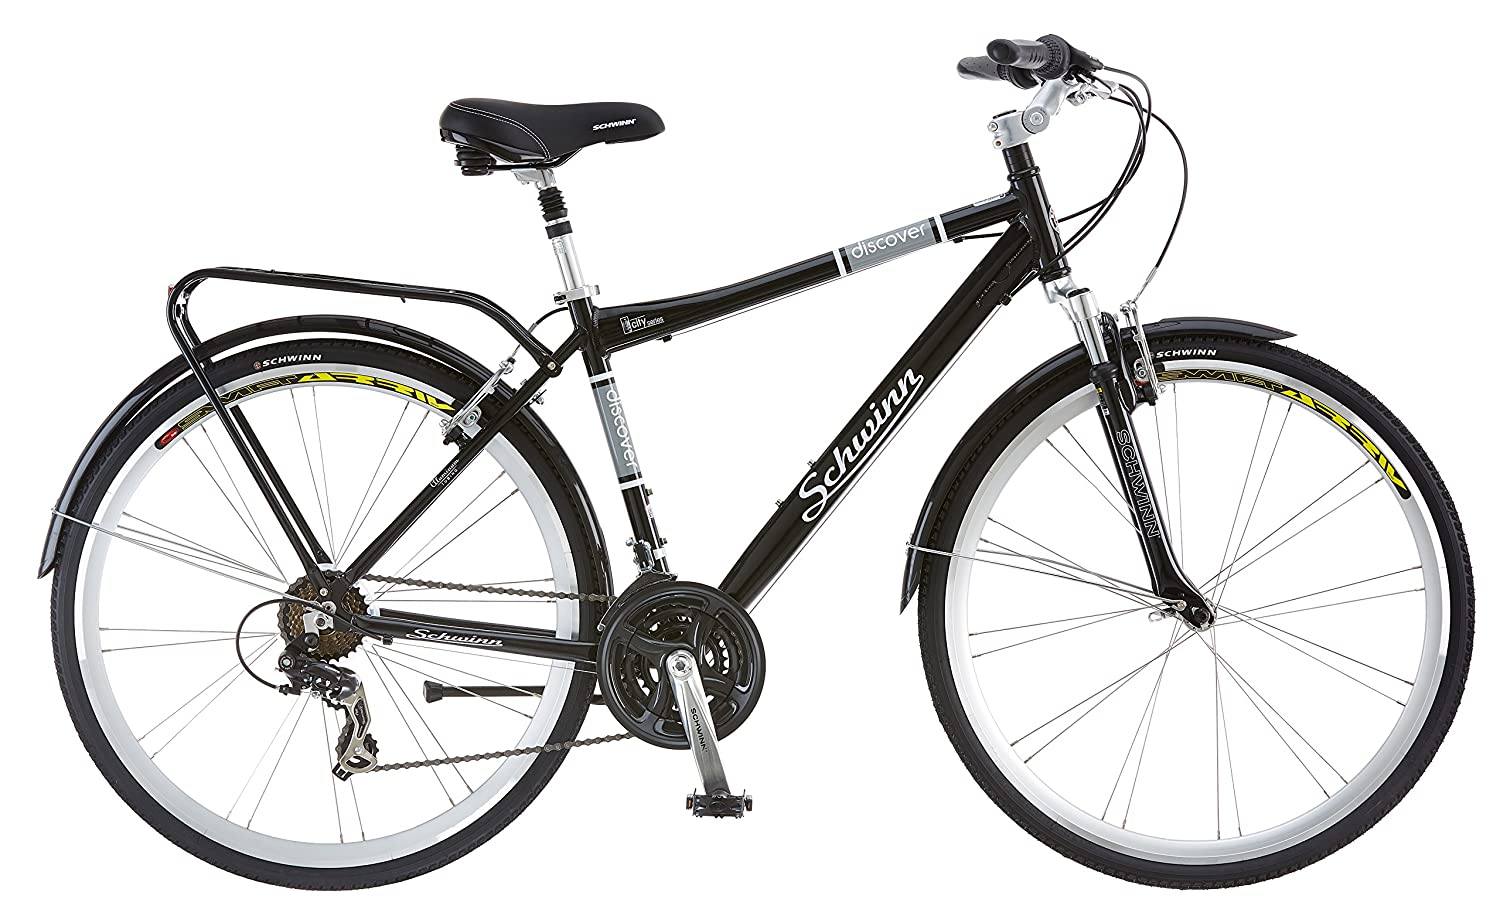 Are Schwinn Bikes Good? – A Look at the Facts - Bikes For All